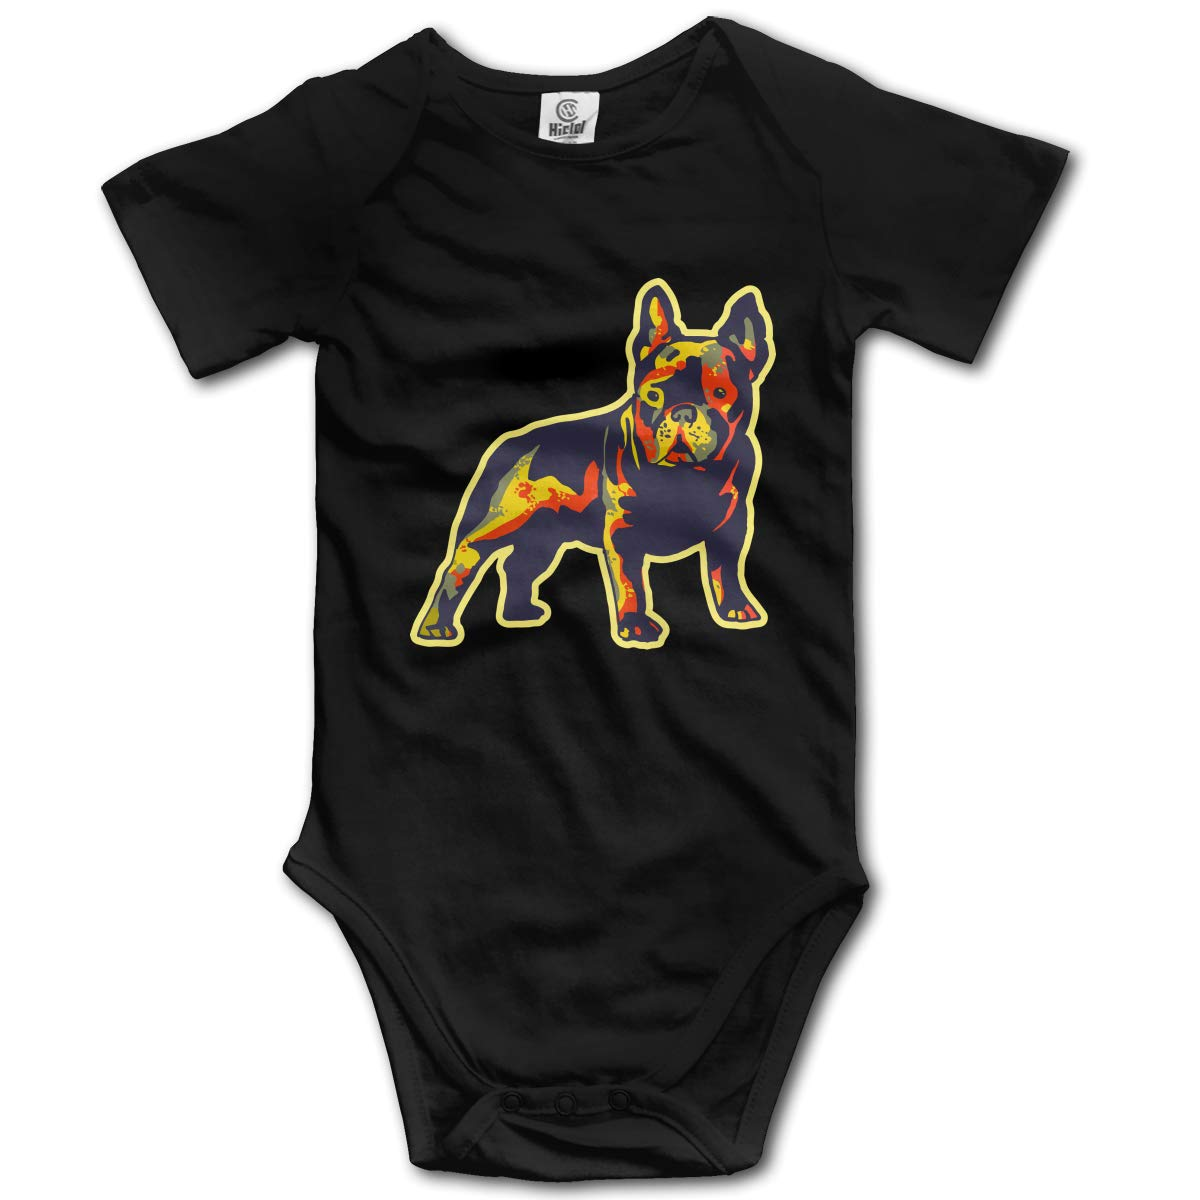 CDHL99 French Bulldog Newborn Girls /& Boys Short Sleeve Outfits Sunsuit Clothes 0-24 Months